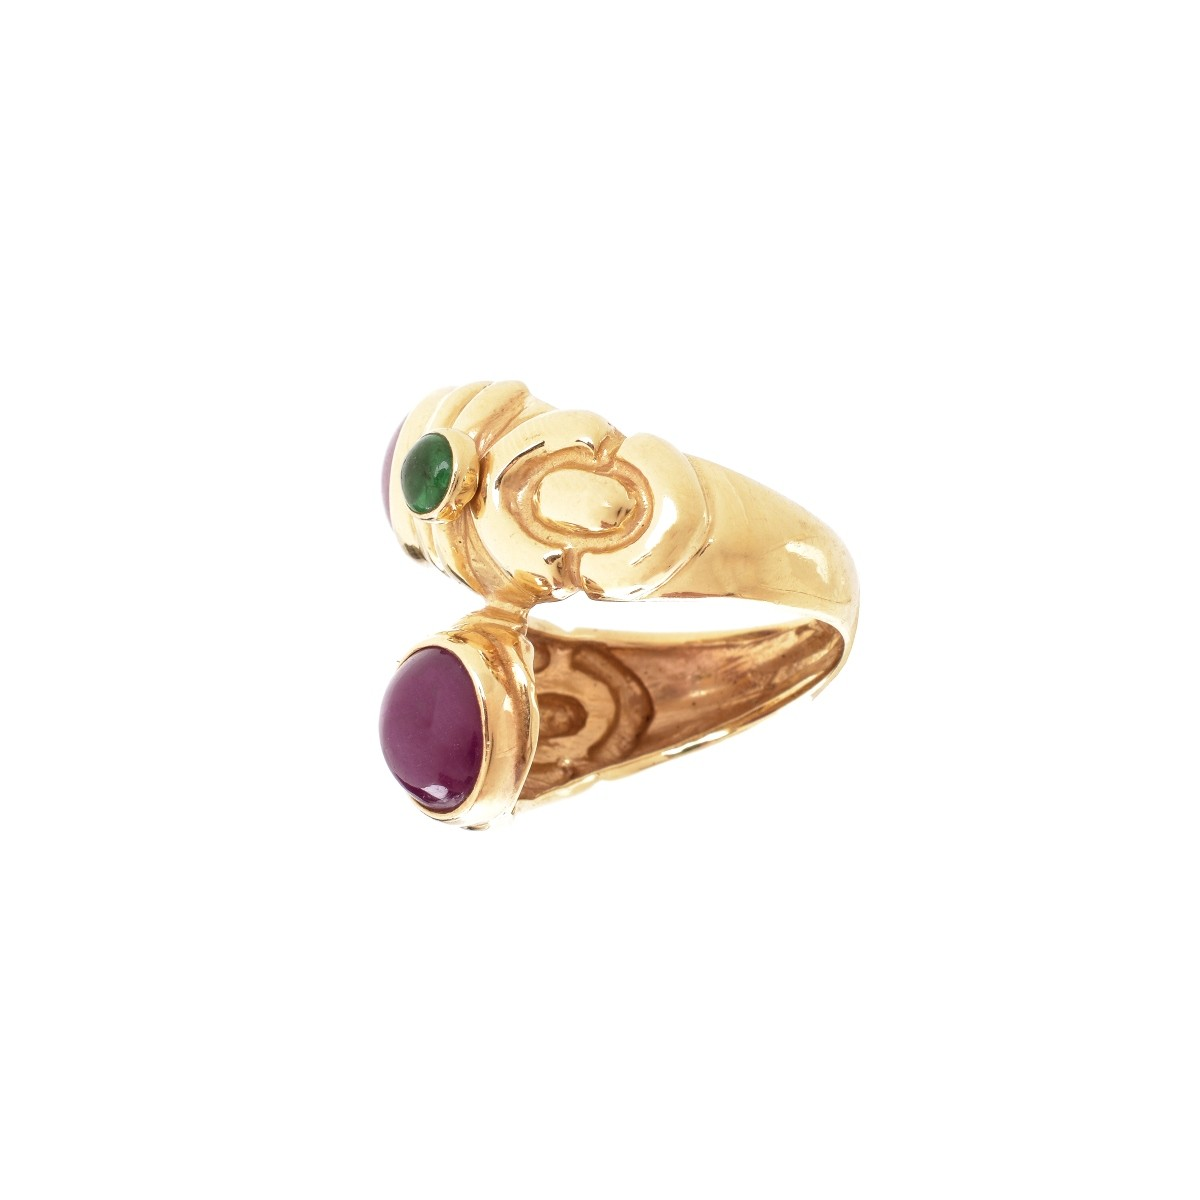 Vintage Ruby, Emerald and 14K Ring